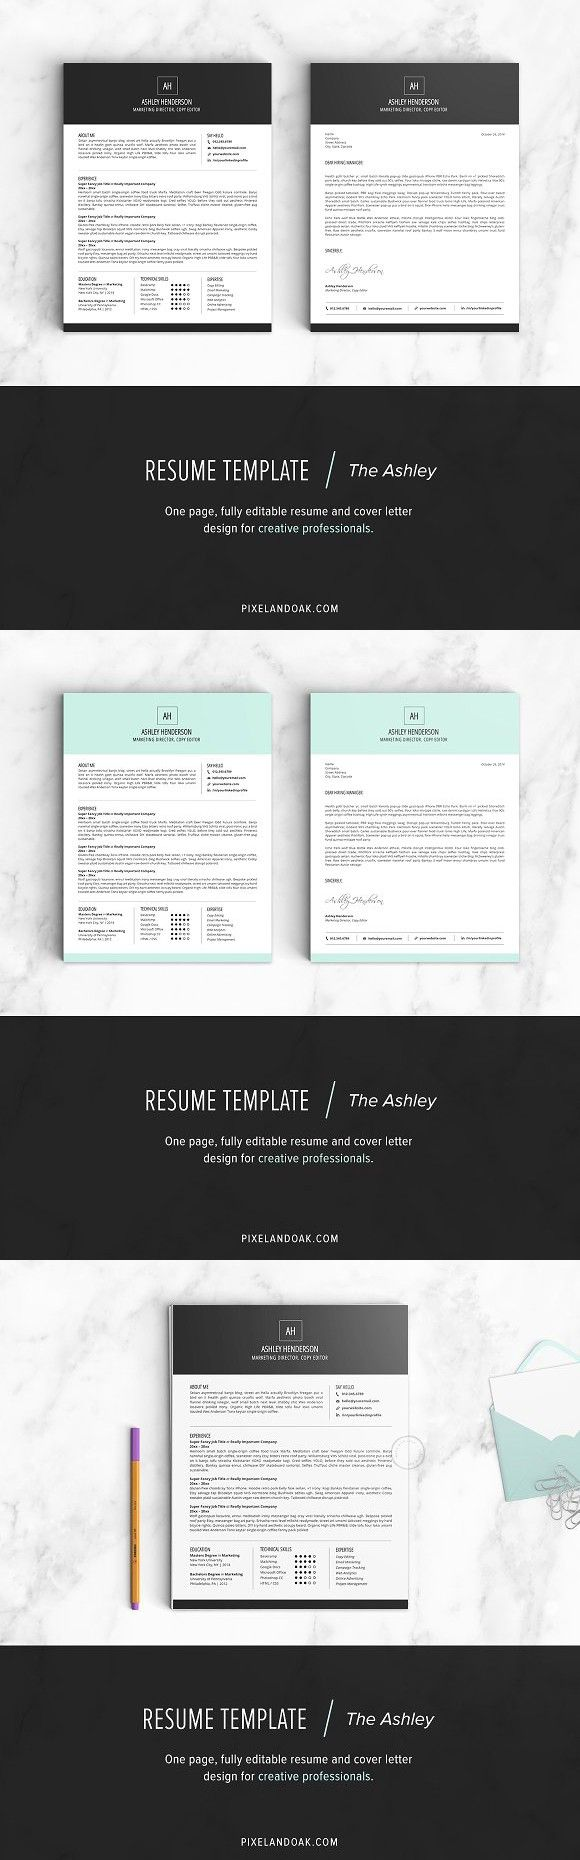 Resume Template The Ashley Resume Template